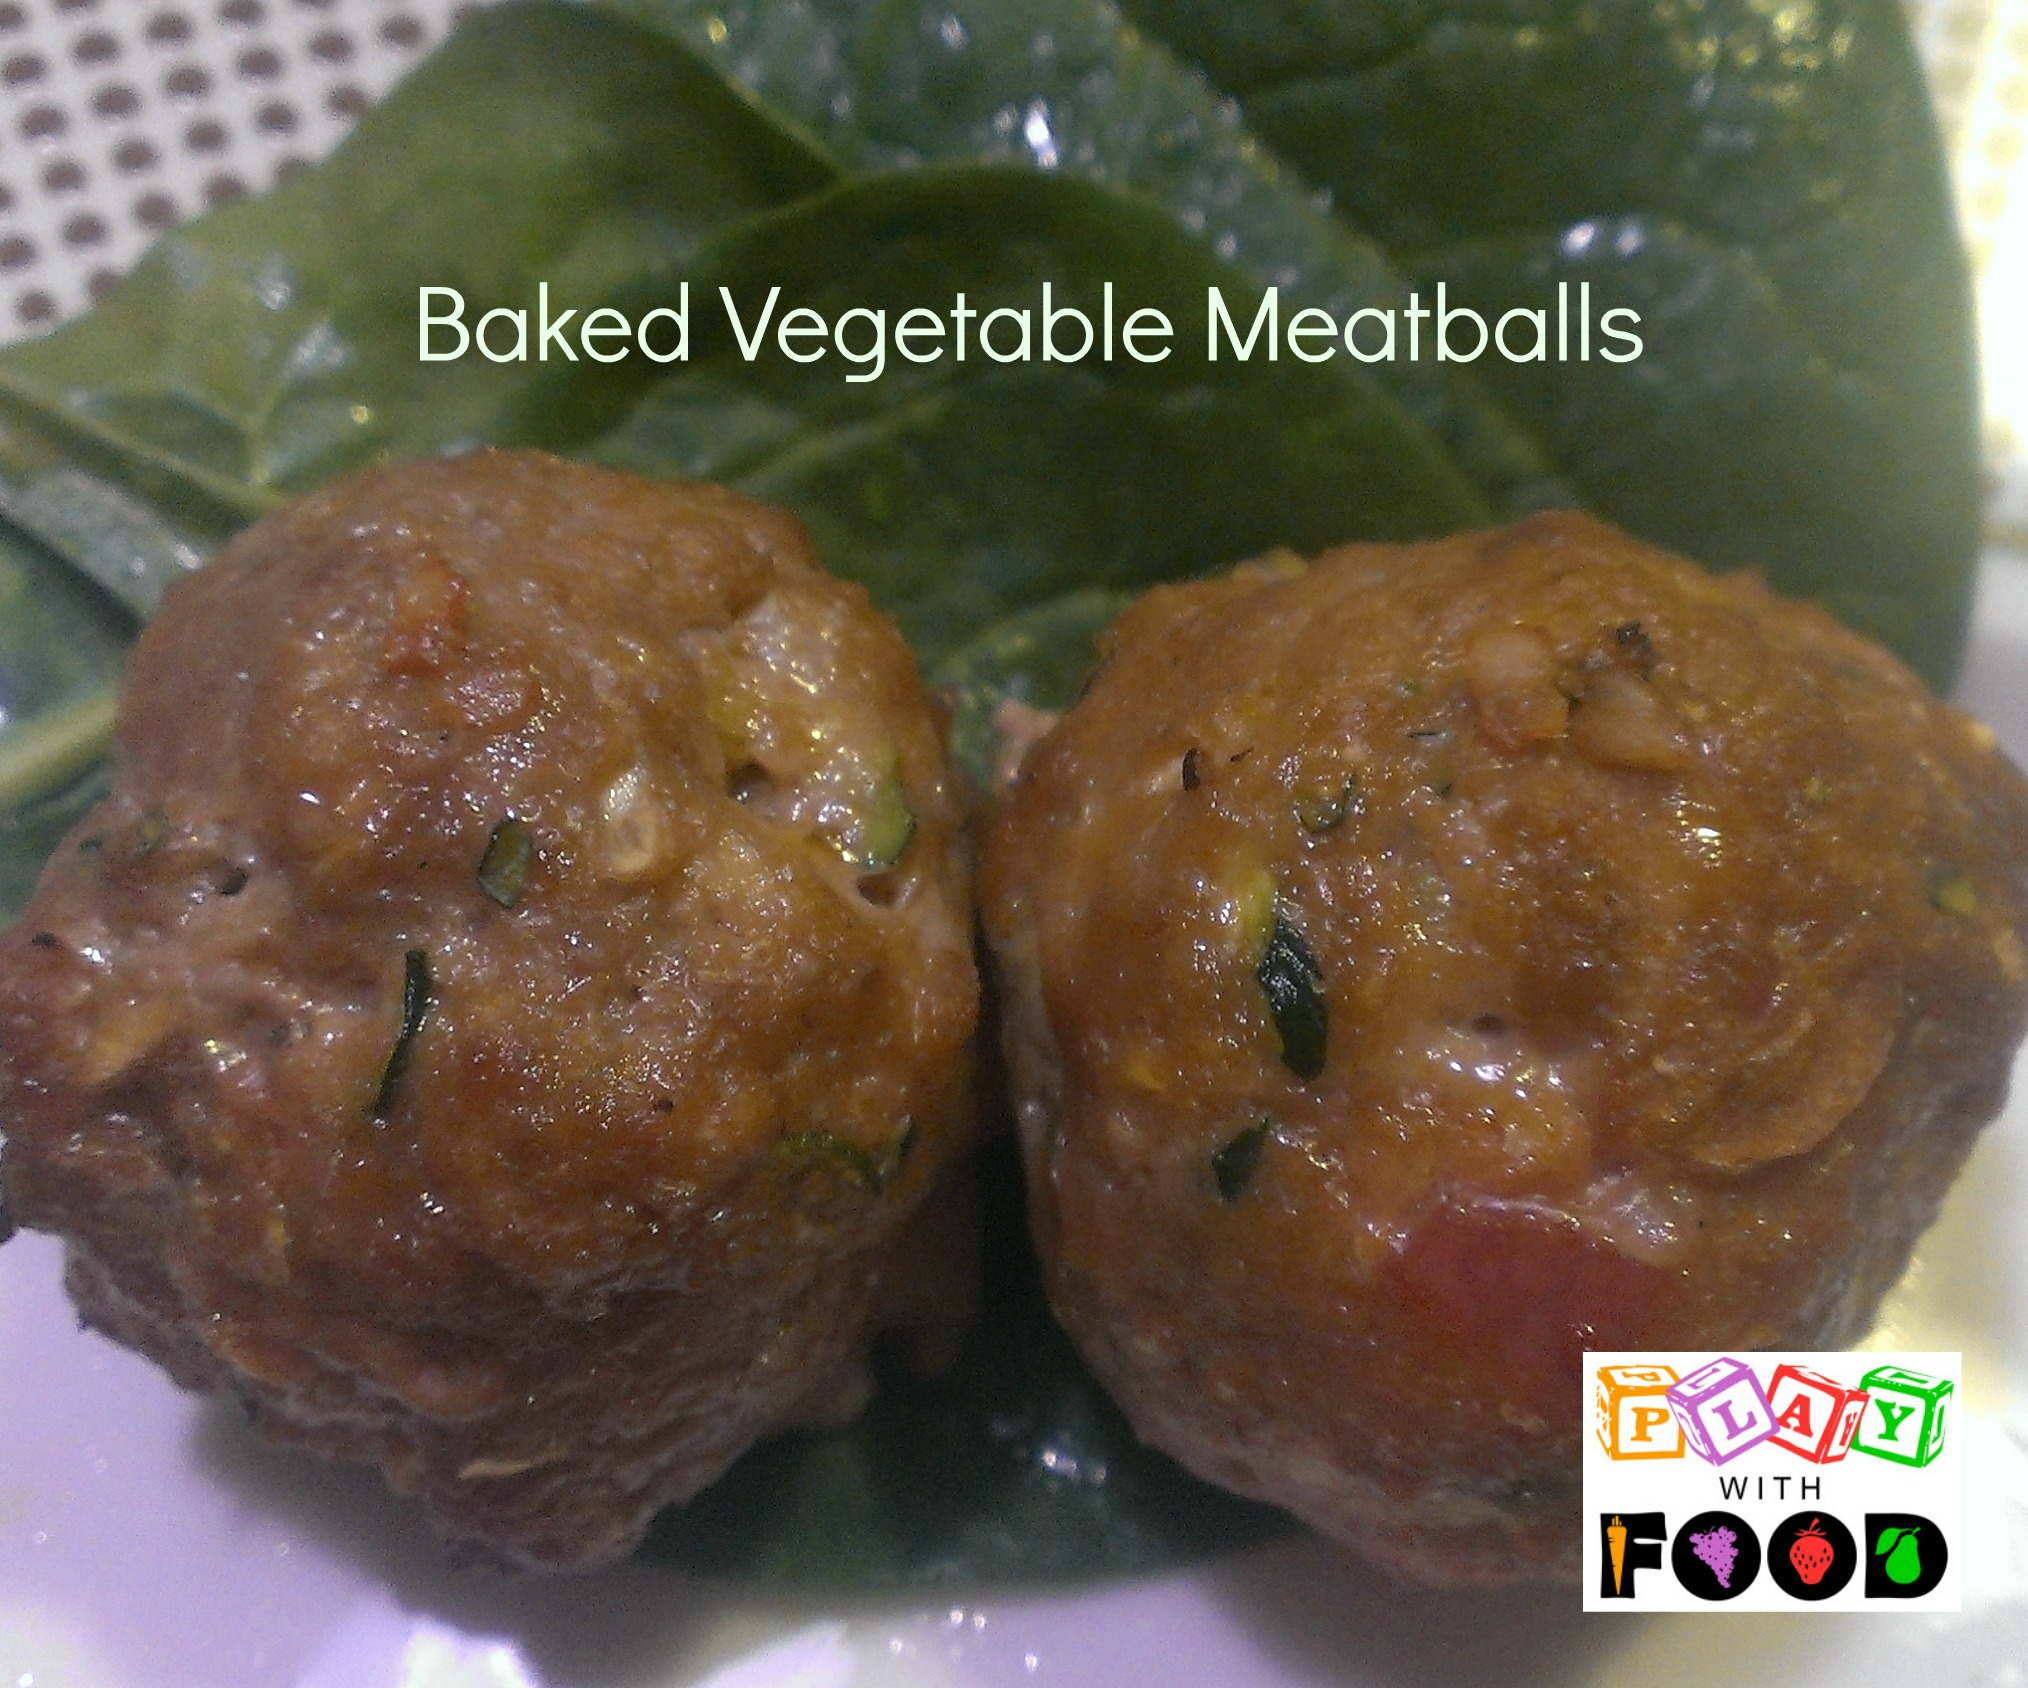 Baked Winter Vegetable Meatballs